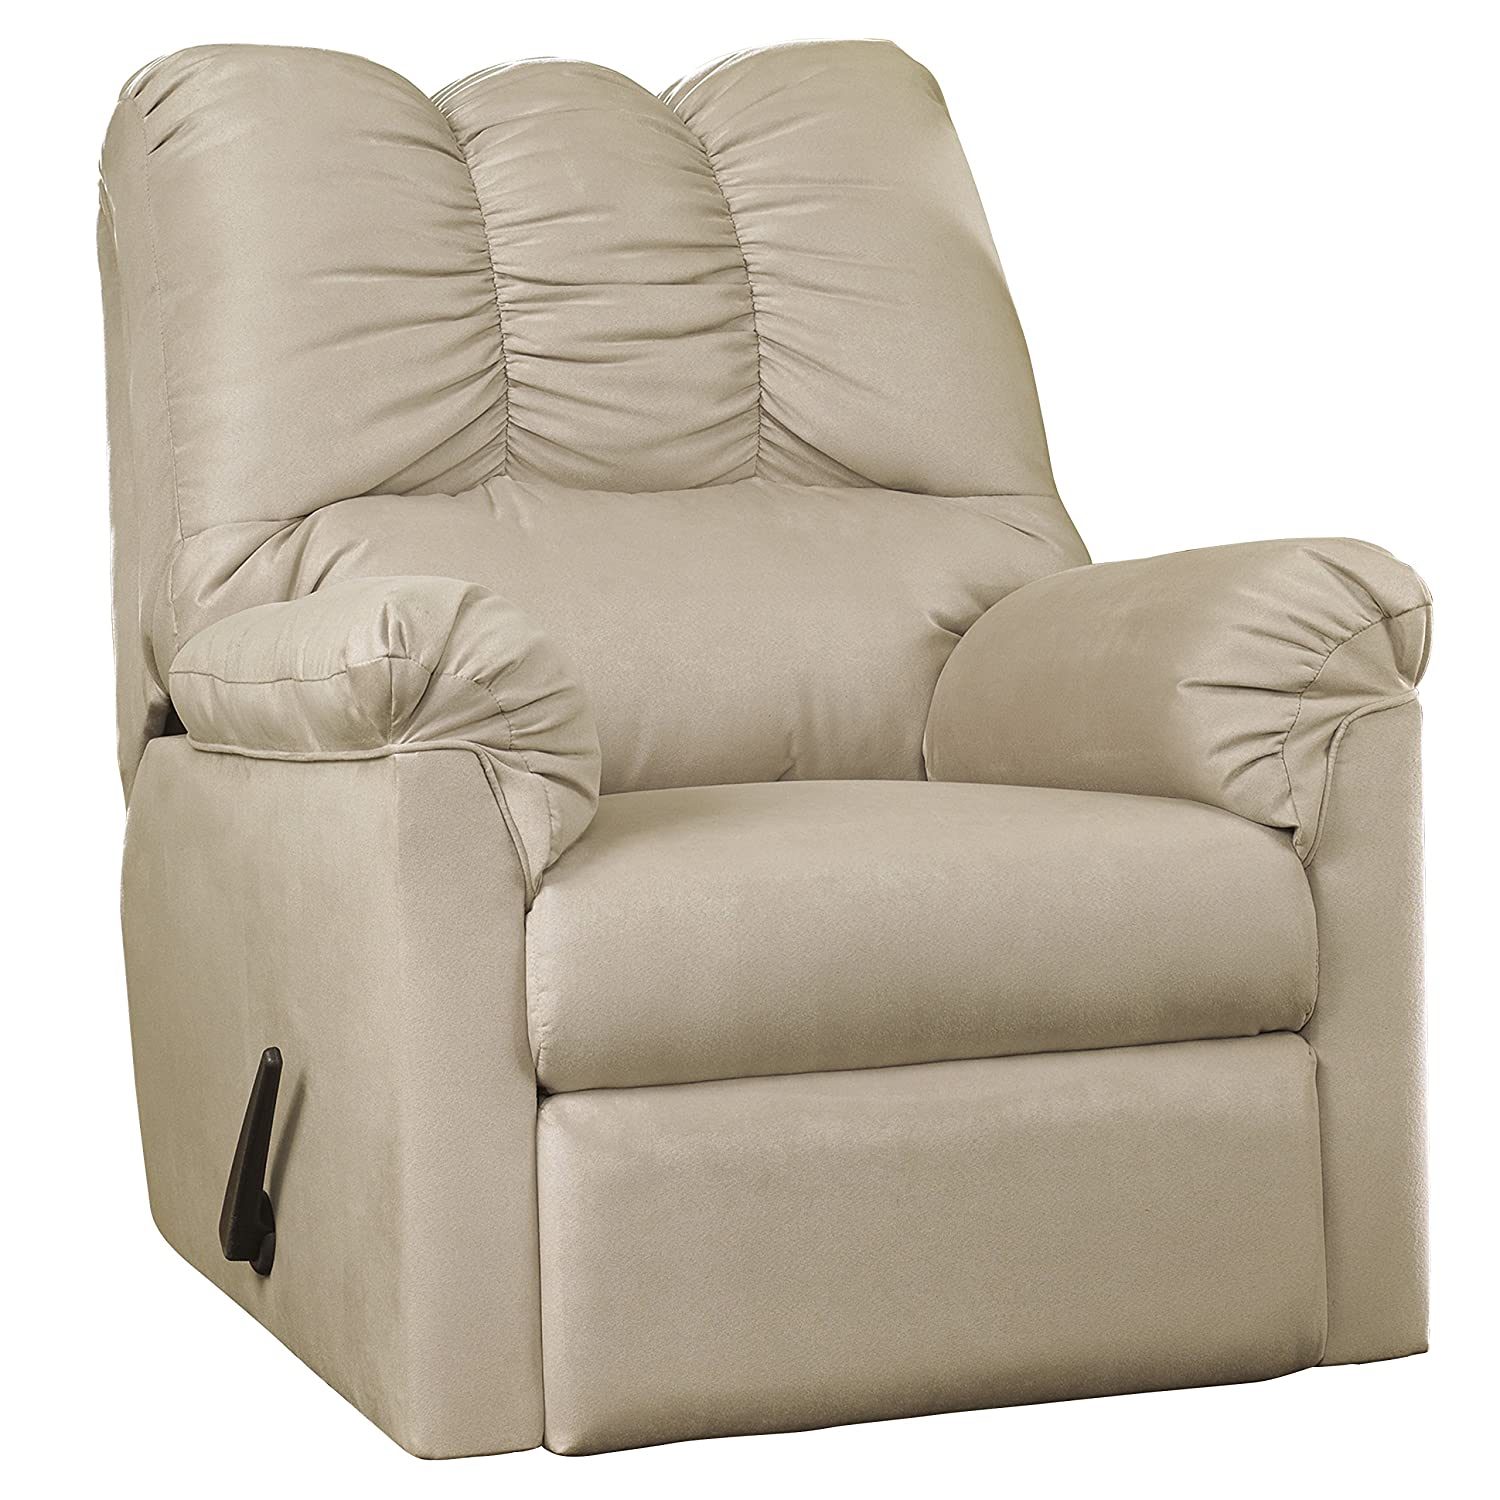 Amazon Signature Design by Ashley Darcy Rocker Recliner in